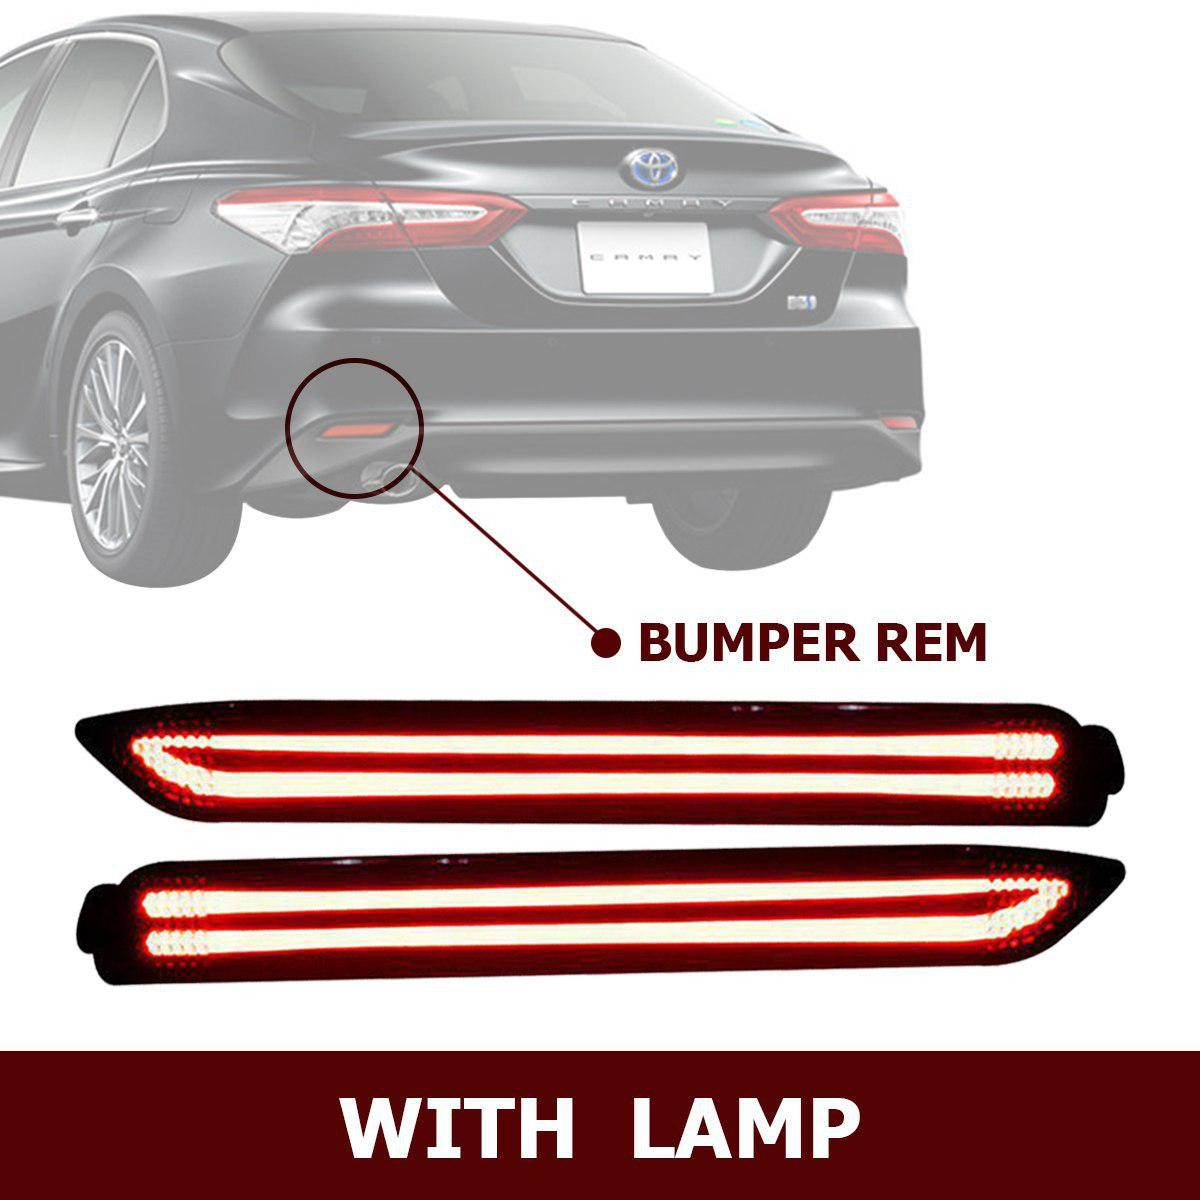 HIRO REAR REFLEKTOR LED BUMPER REM WITH LAMP FOR TOYOTA CAMRY 2013